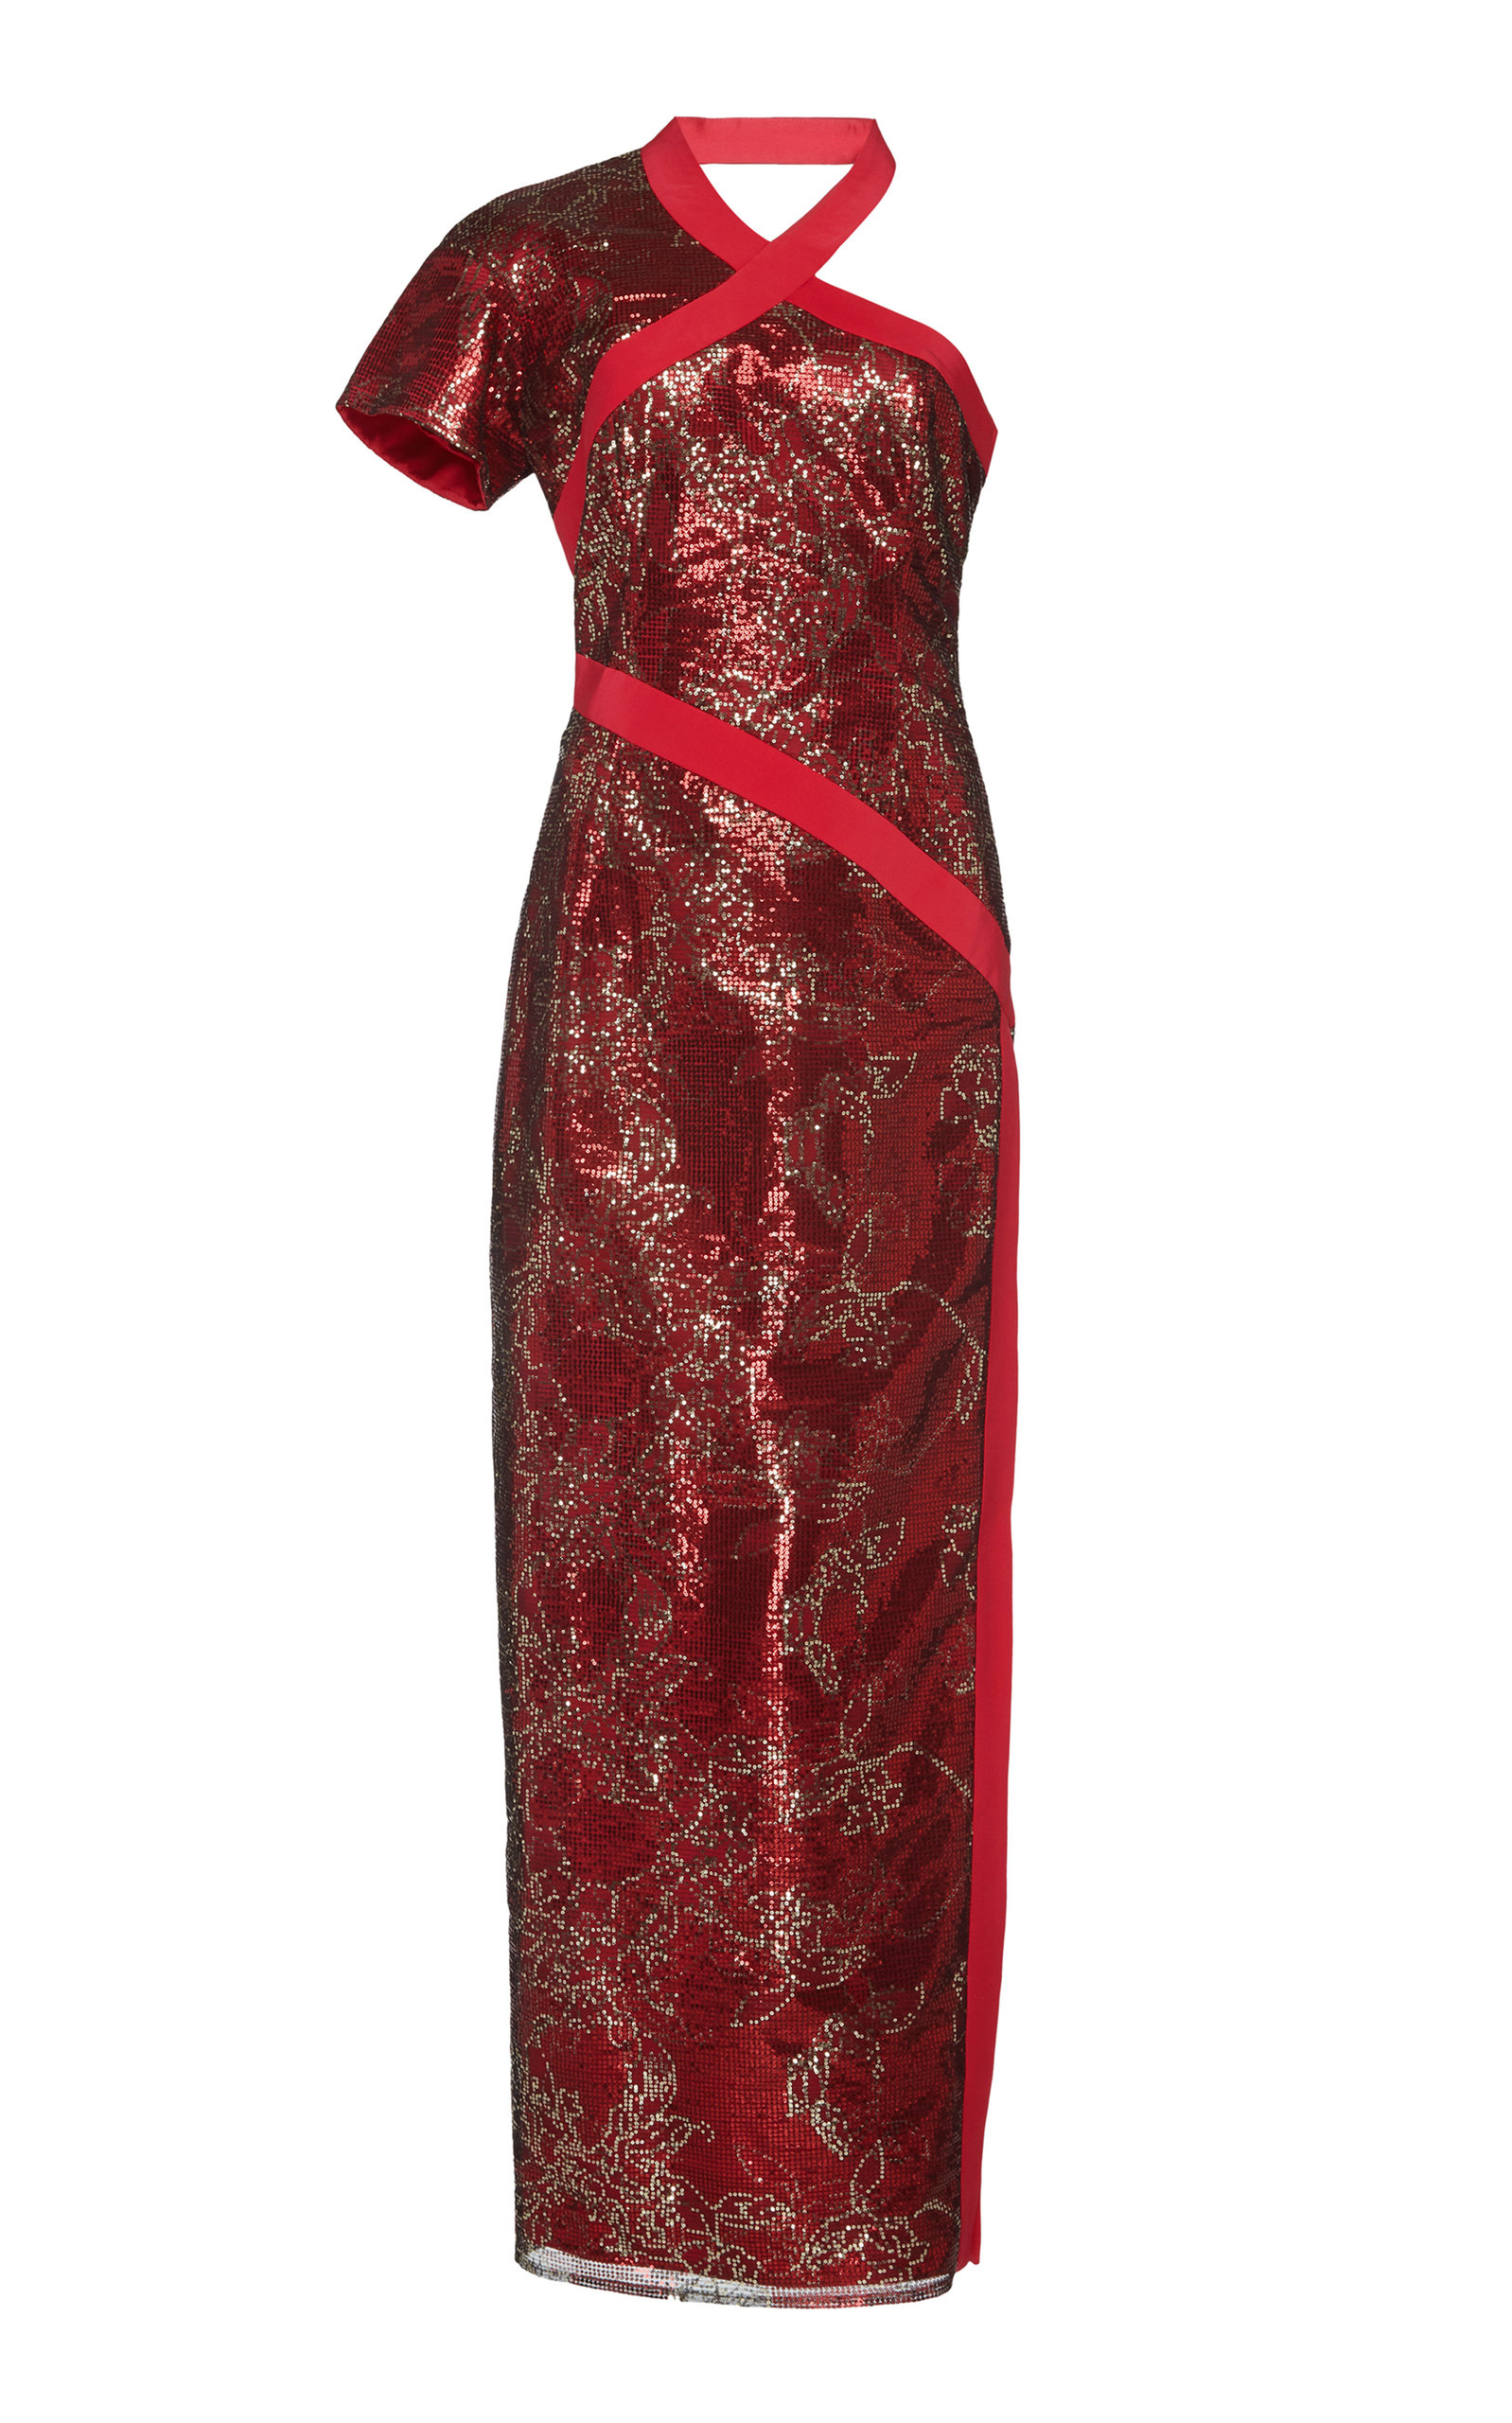 ELEANOR BALFOUR Exclusive Constance One-Shoulder Sequined Gown in Red